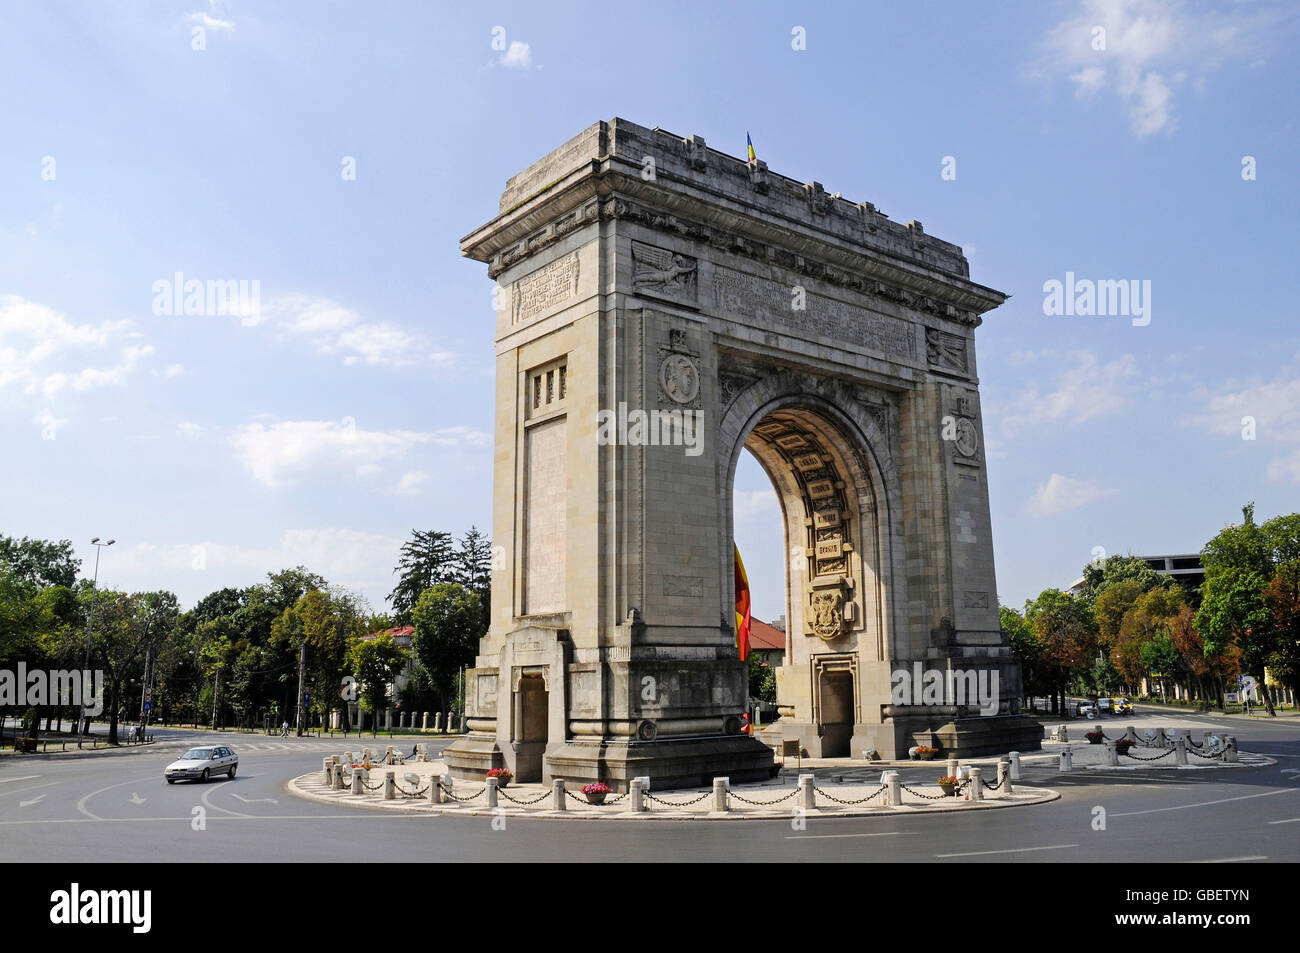 Triumphal Arch, Bucharest, Romania - Stock Image